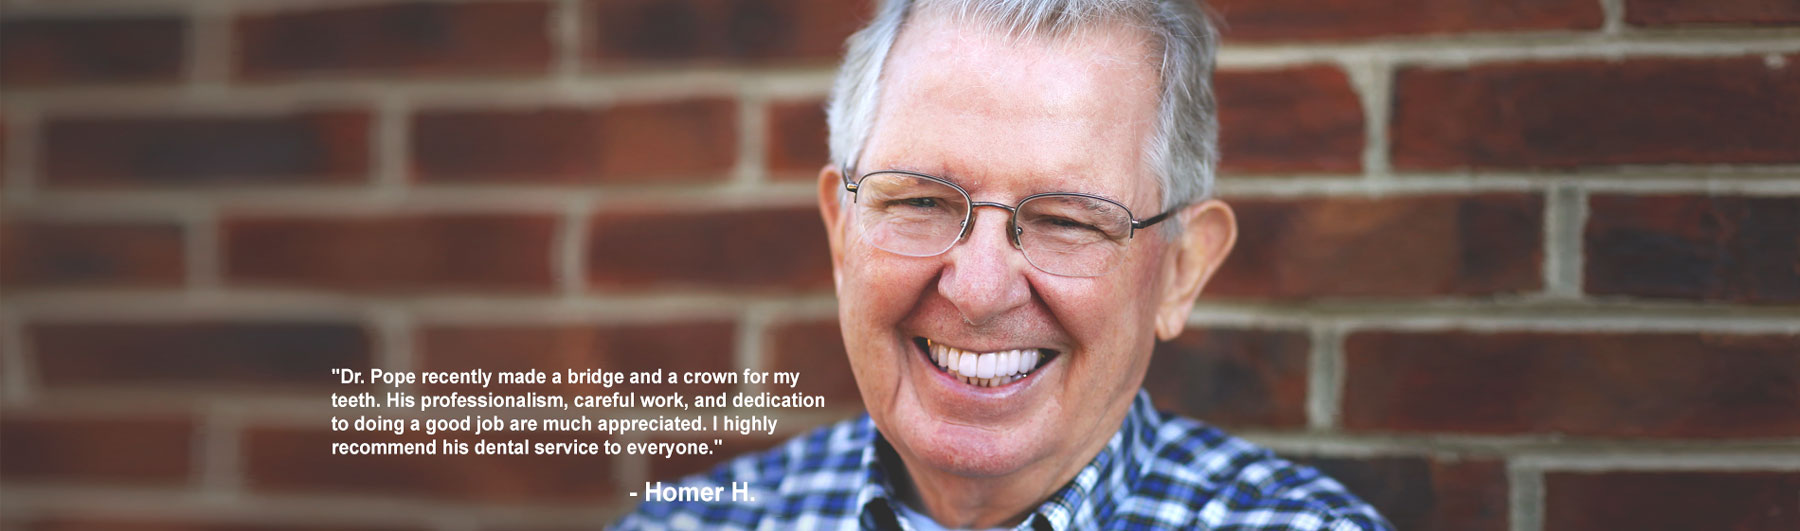 Southern Dental Group Homer H. Testimonial